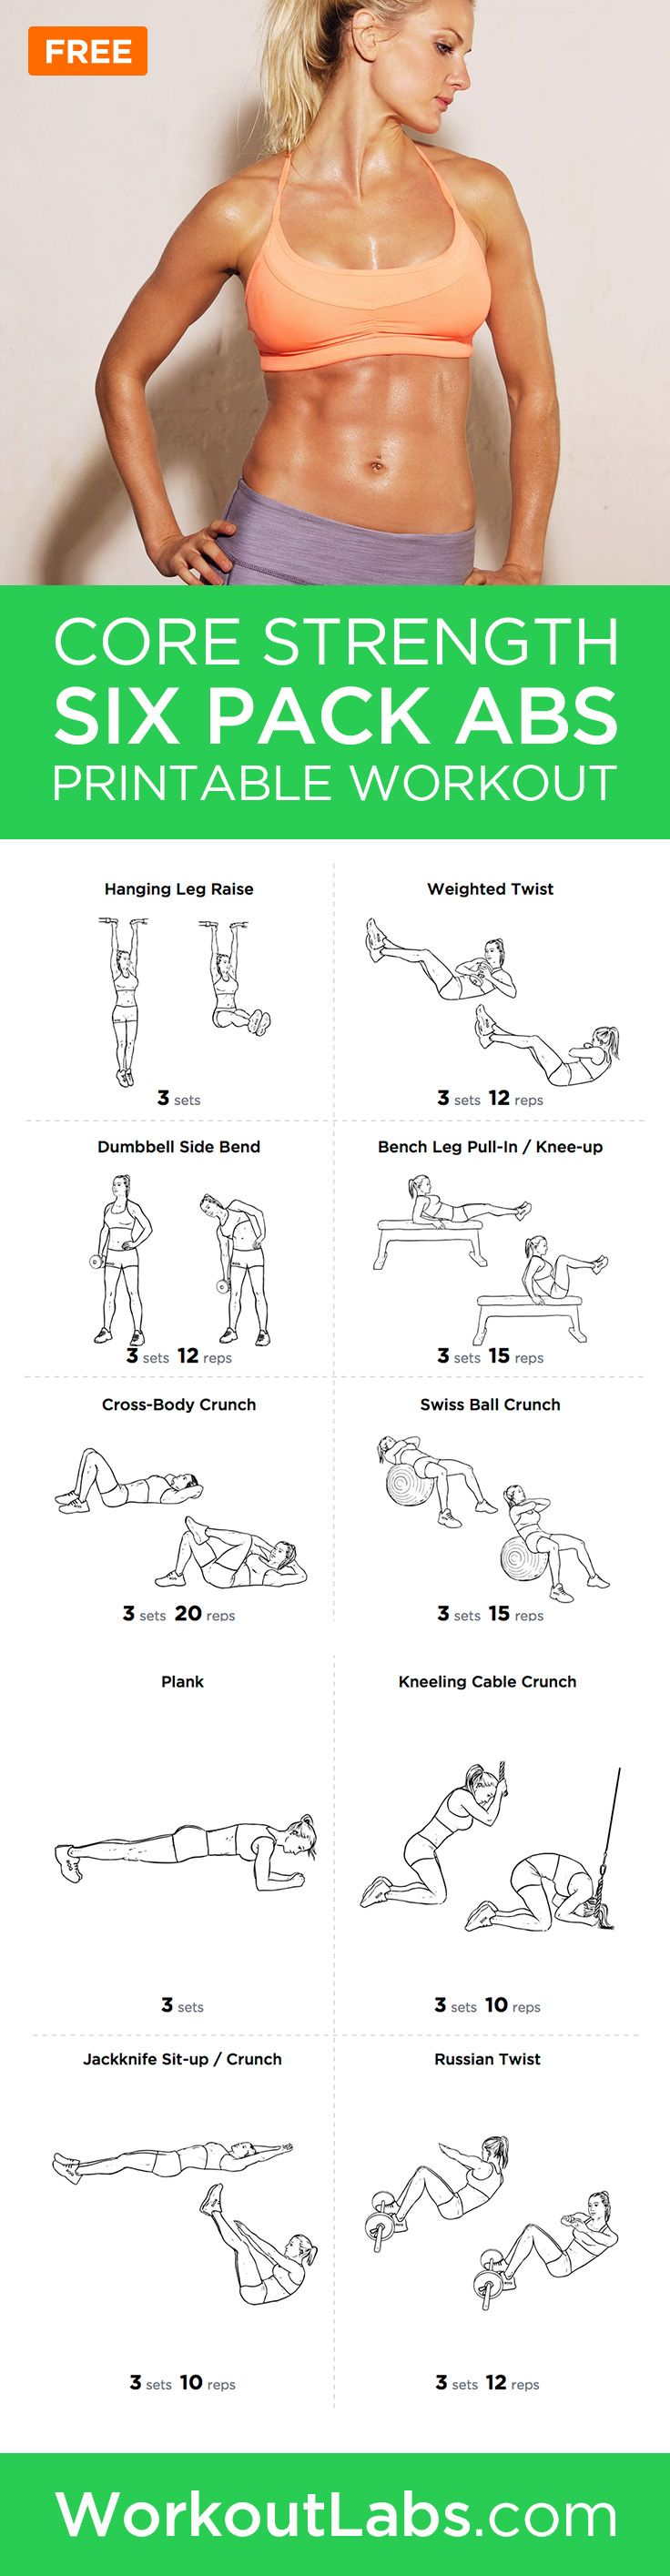 25 Best Crossfit Upper Body Wod Images On Pinterest -1646